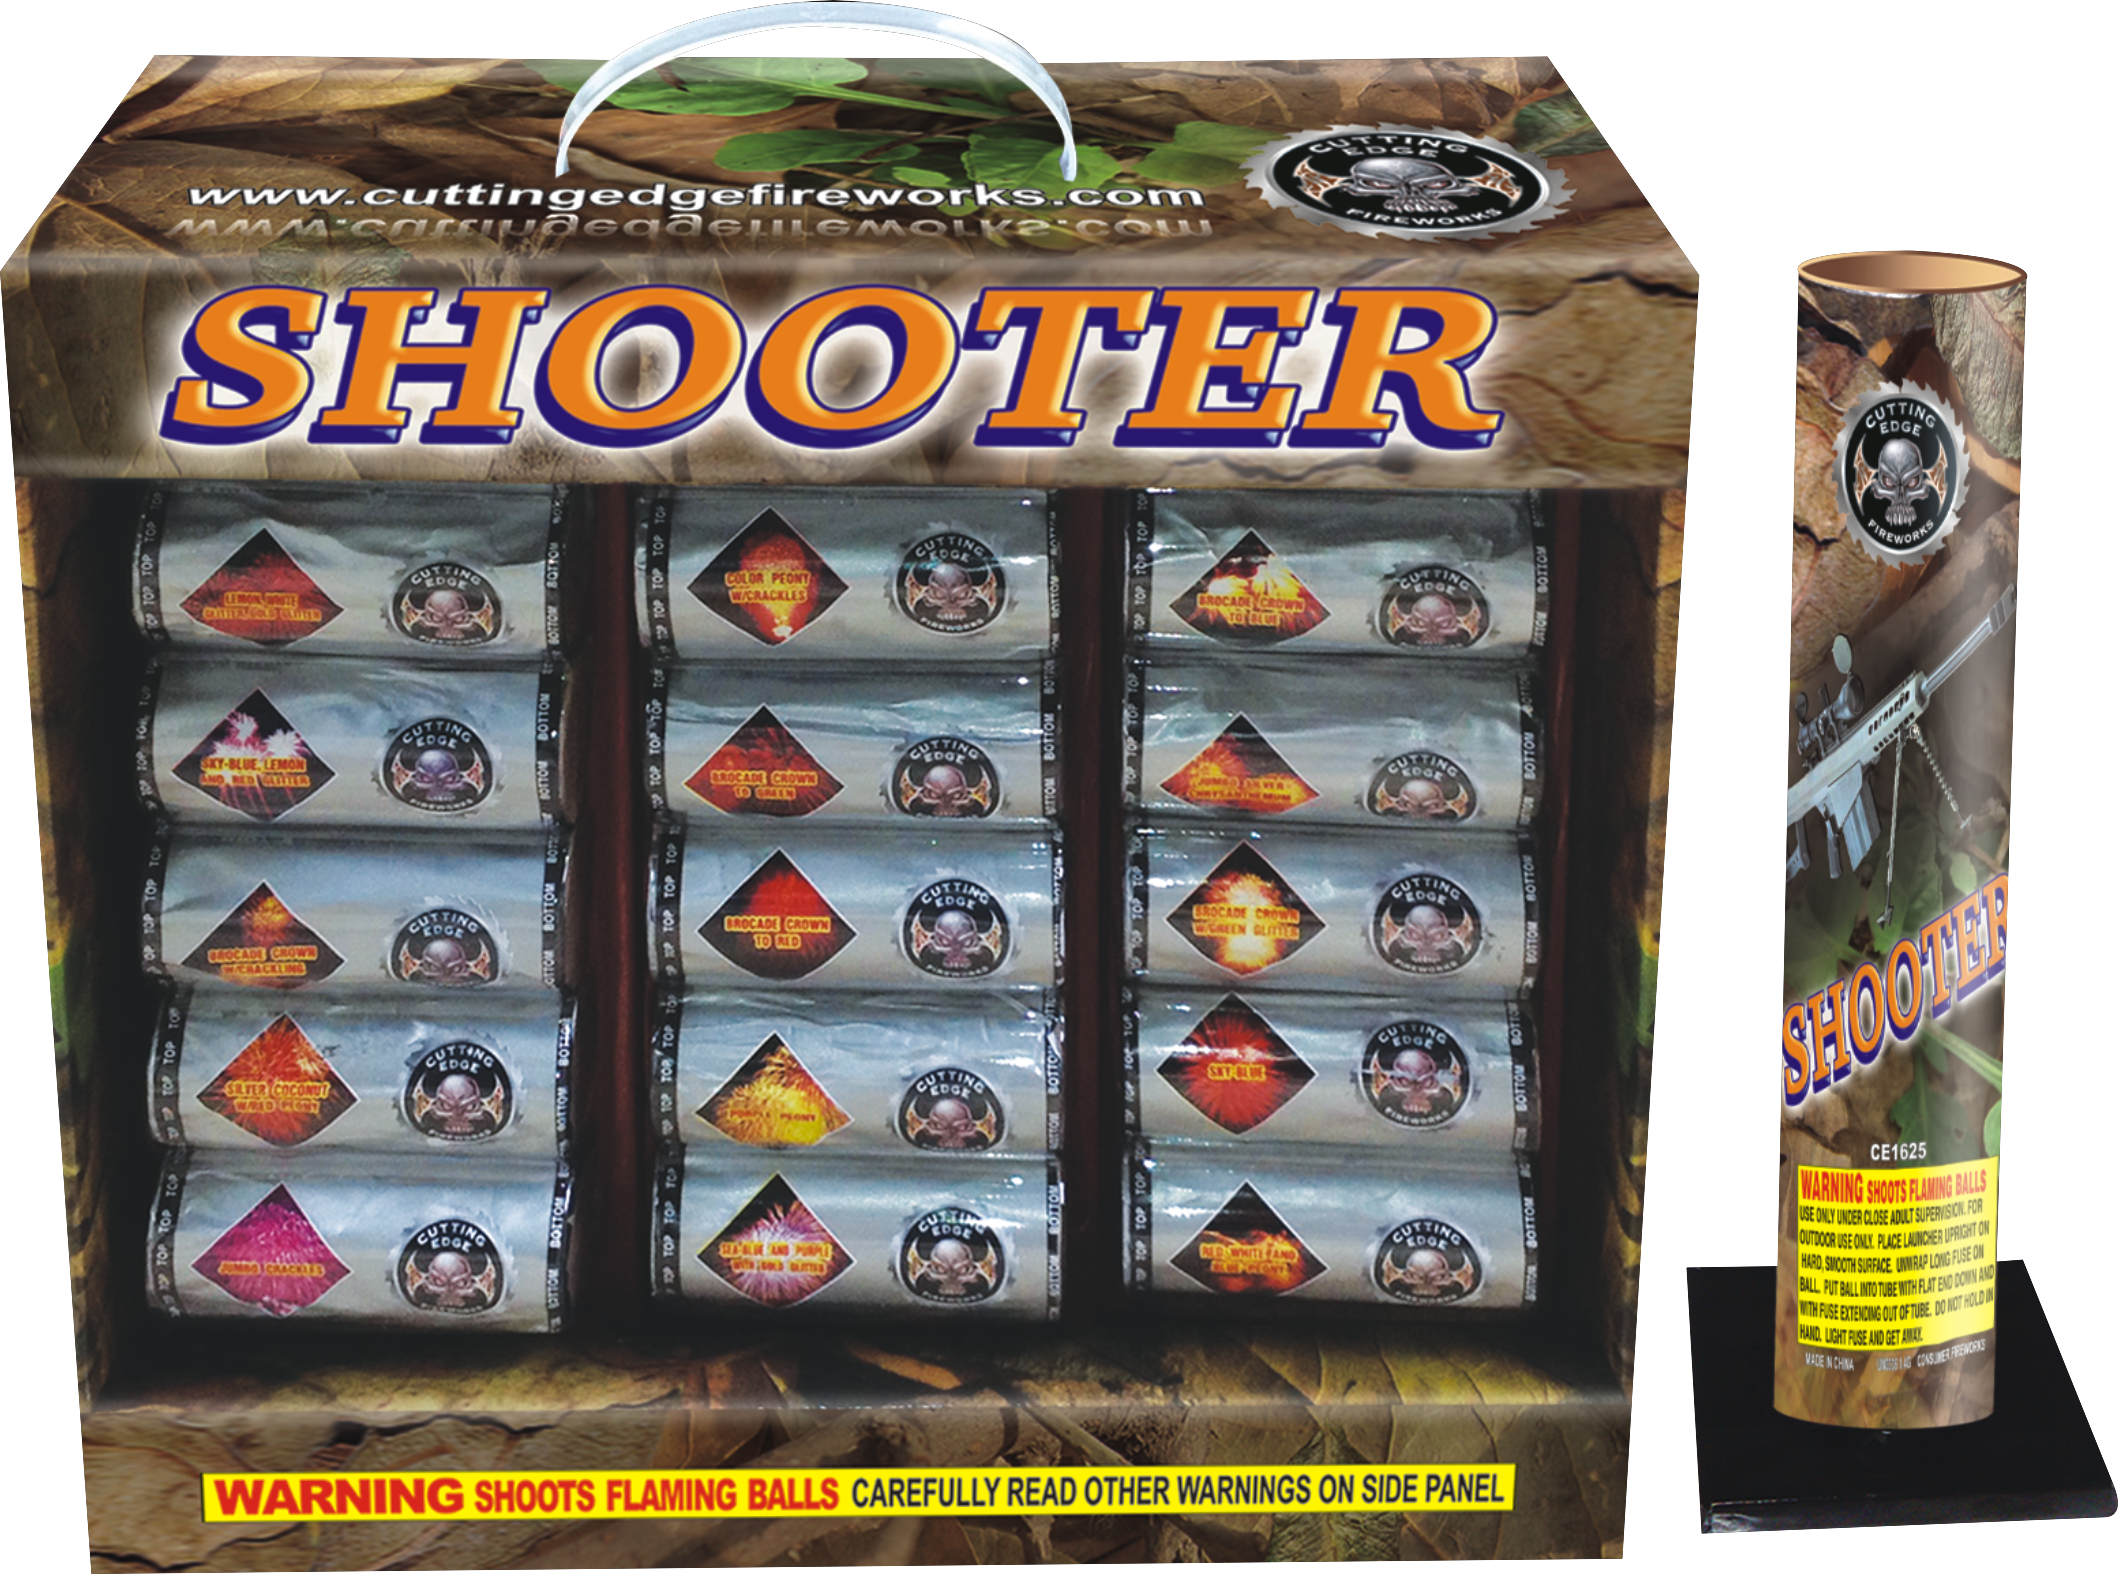 CE Shooter | Cutting Edge Fireworks